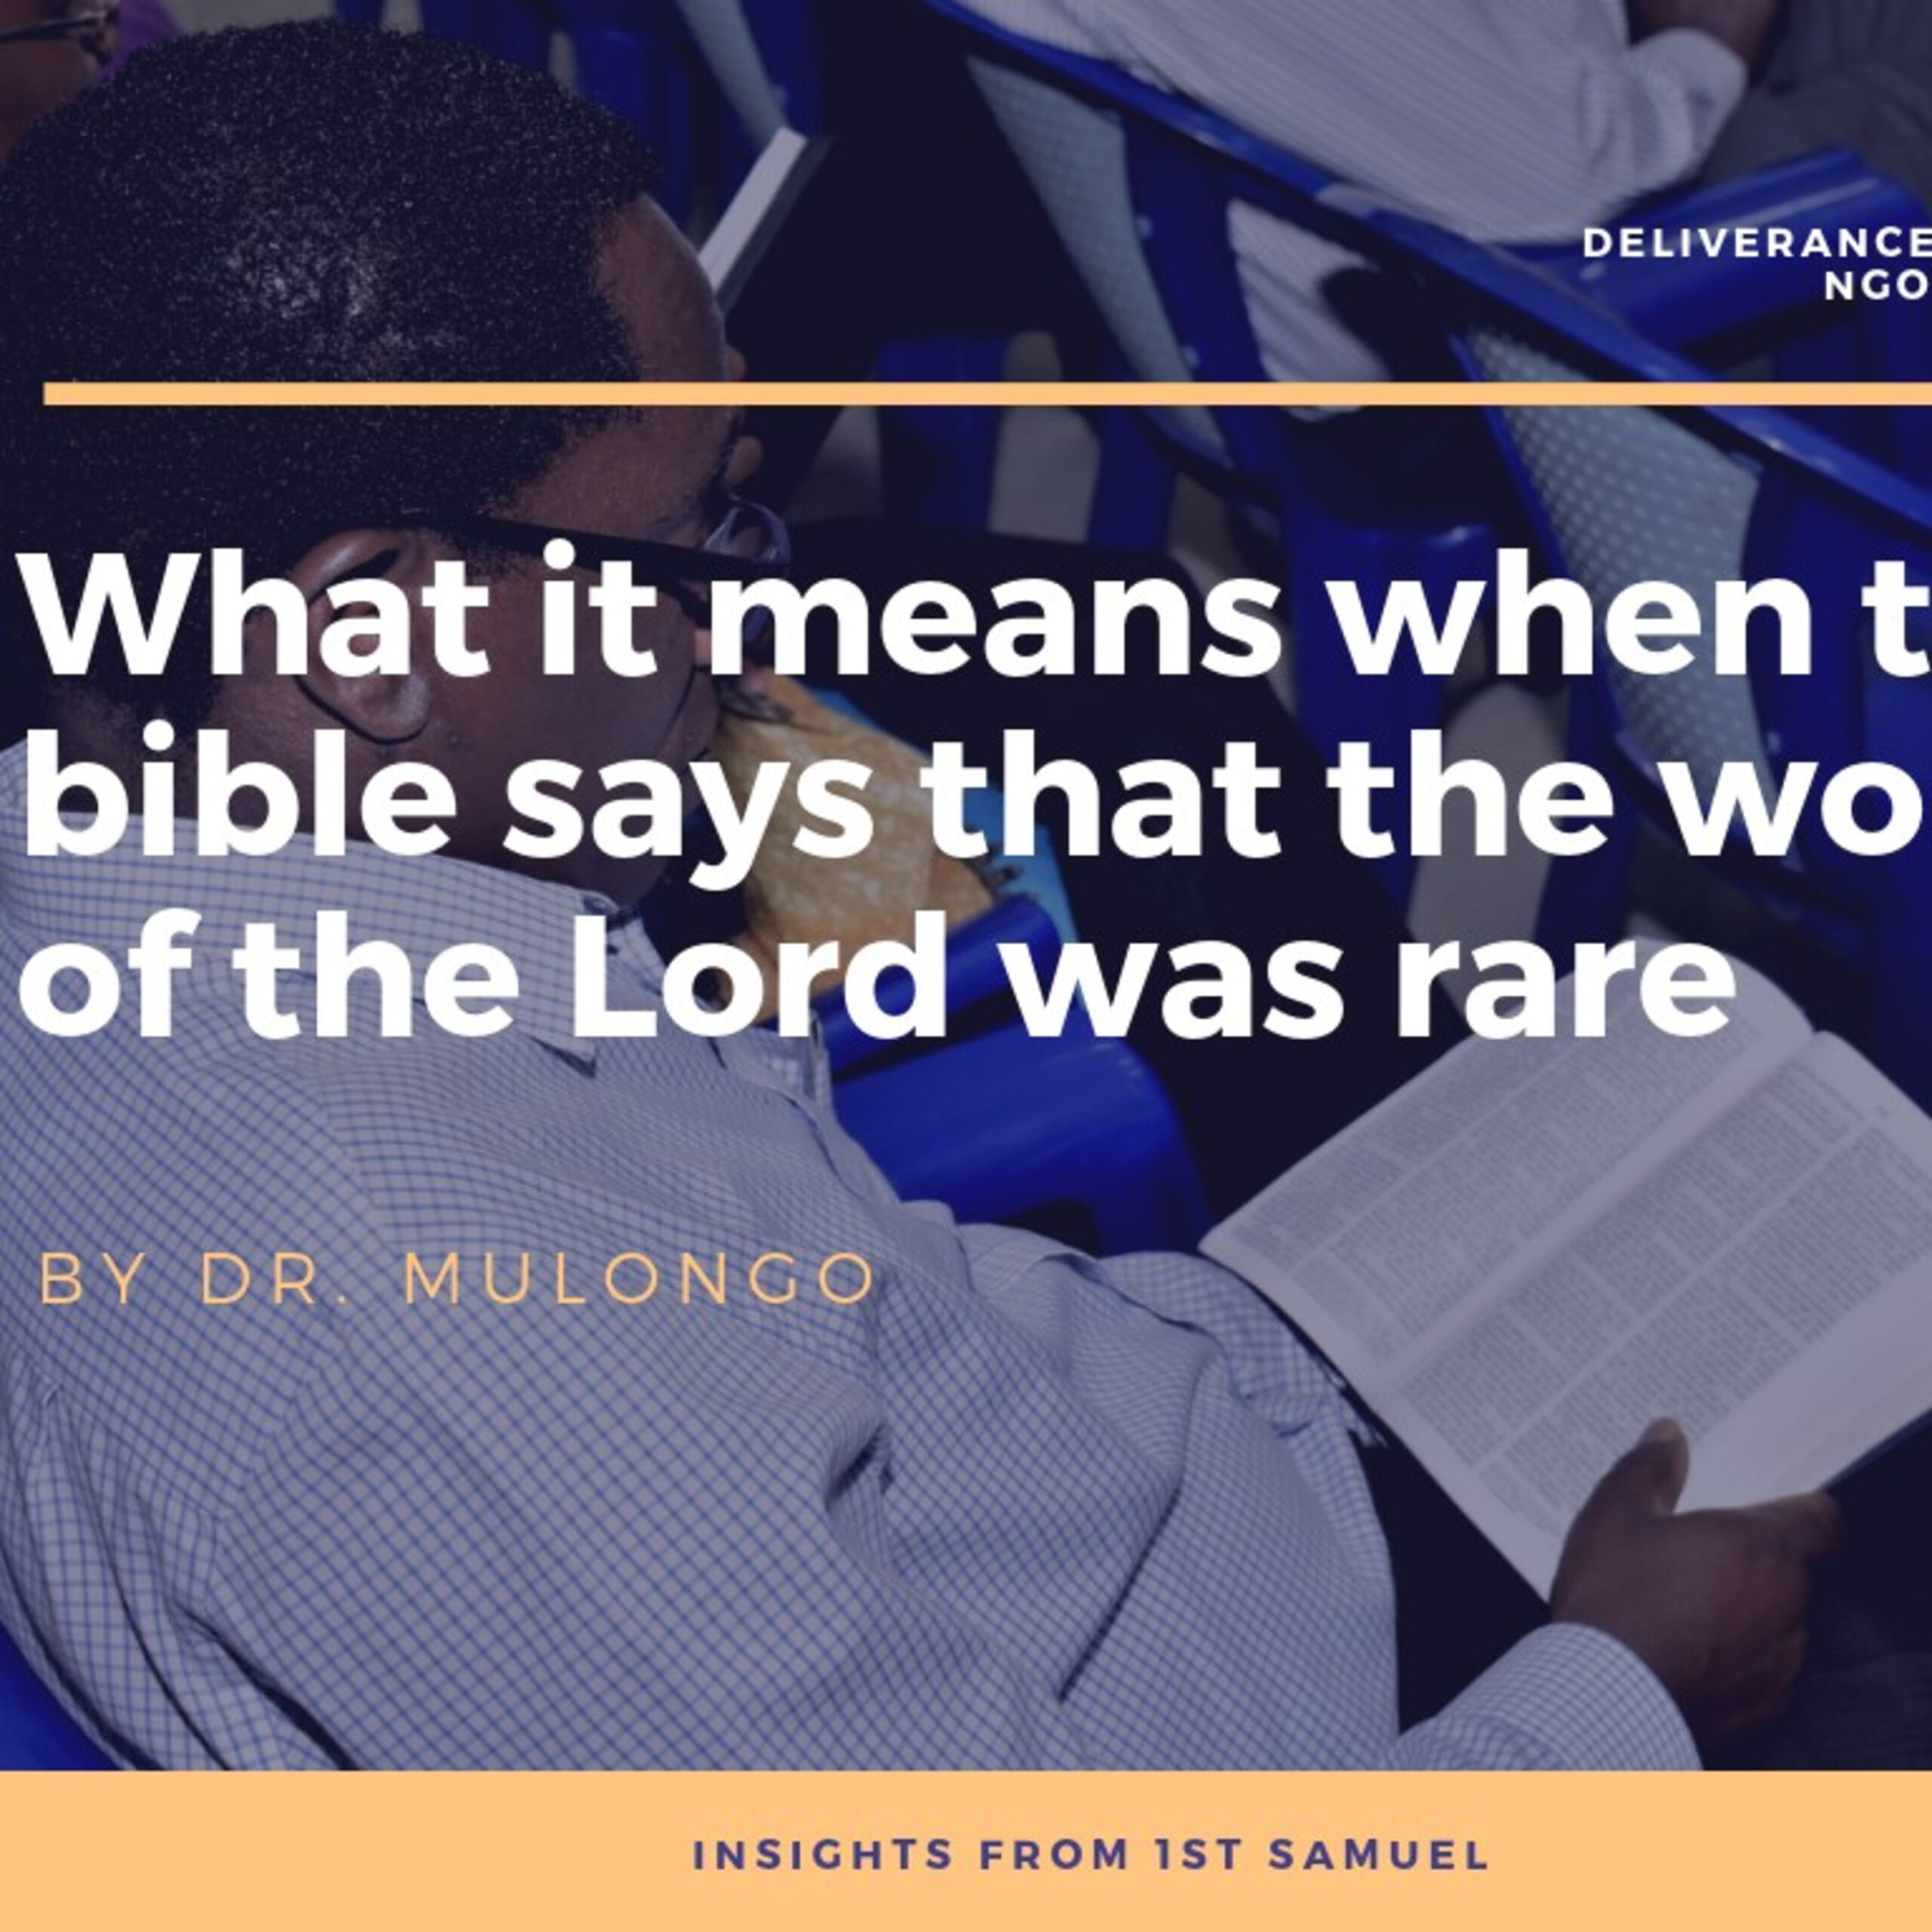 What it means when the bible says that the word of the Lord was rare   Dr. Mulongo